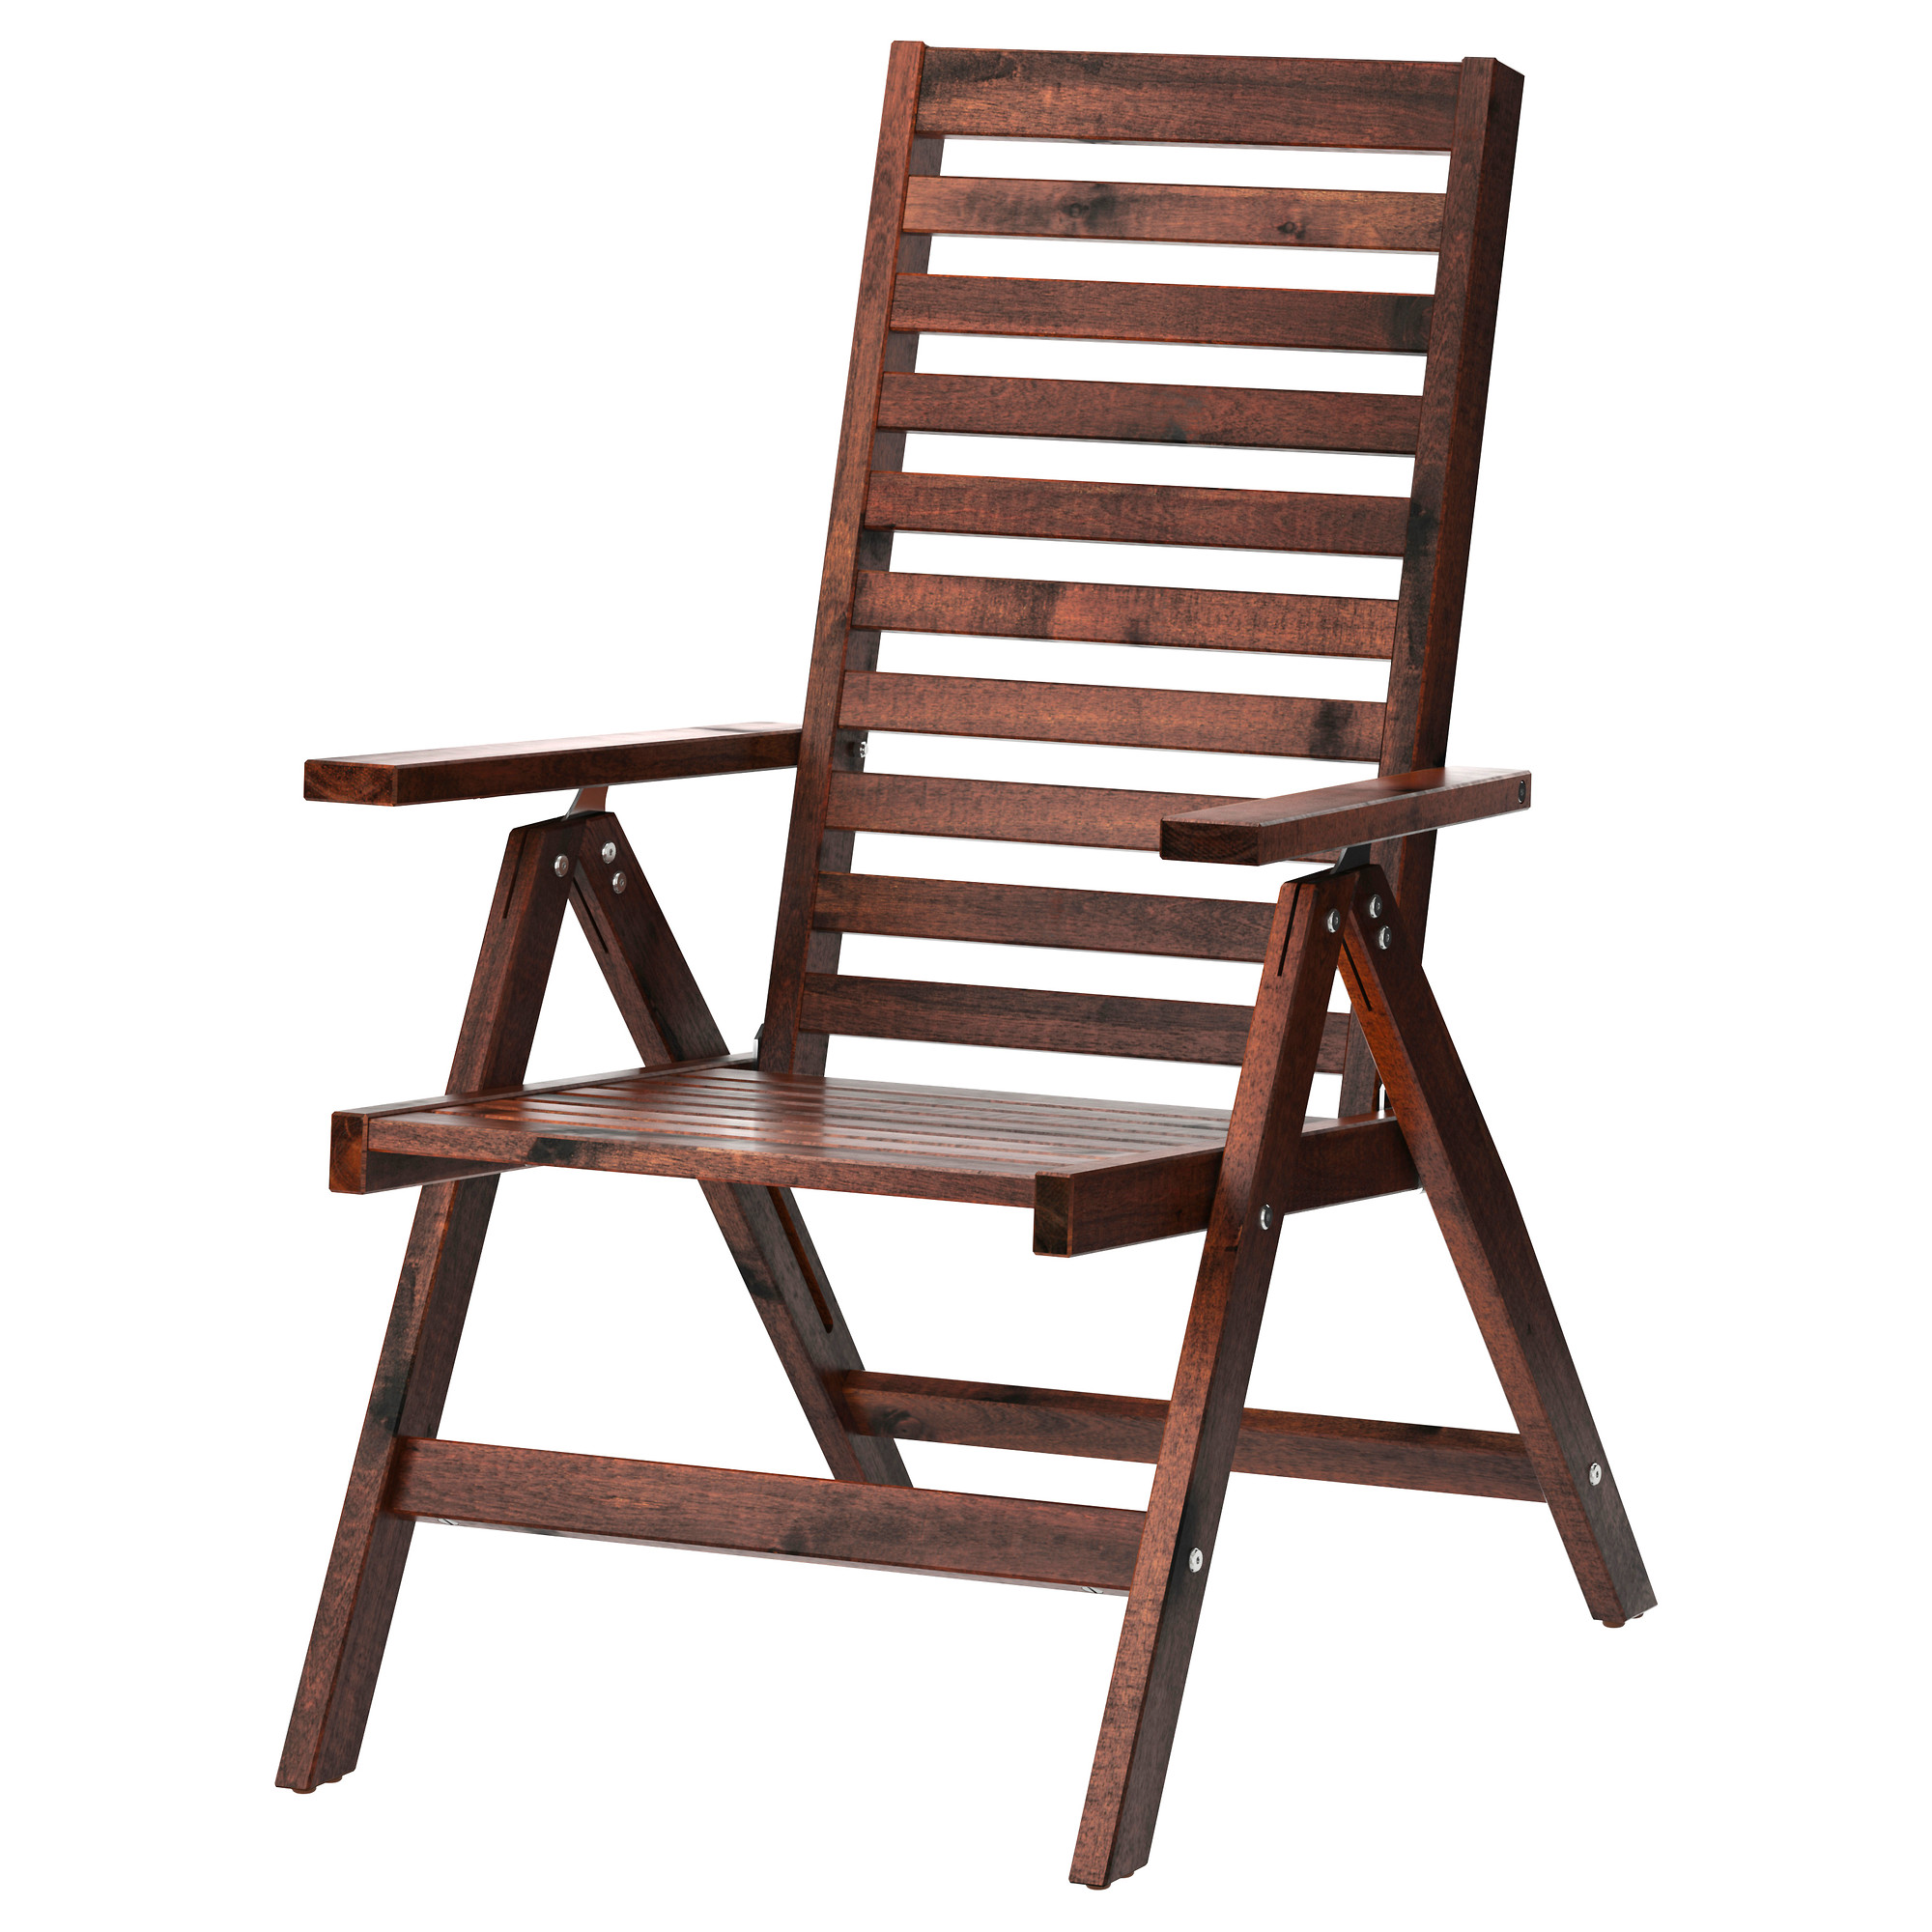 Picture of: Applaro Reclining Chair Outdoor Foldable Brown Stained Ikea Hong Kong And Macau